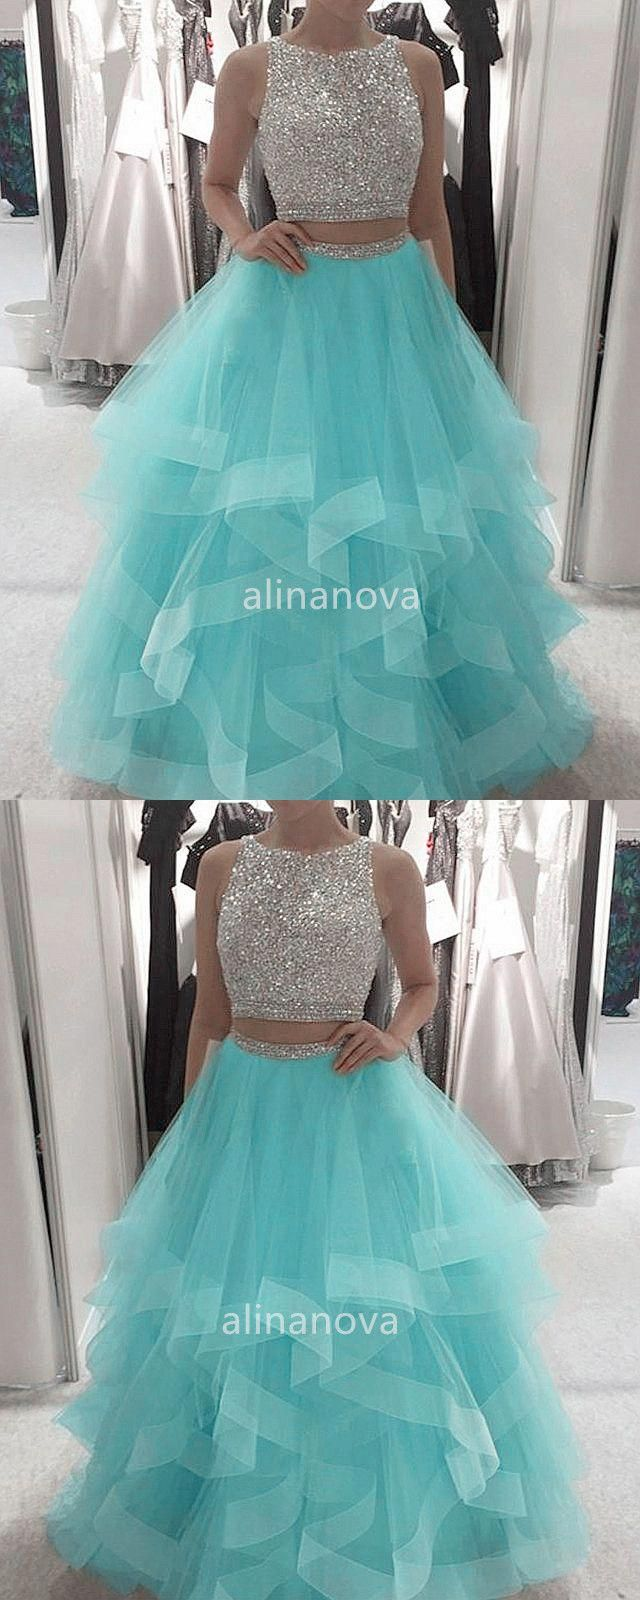 Light Blue Prom Dresses Ball Gown Prom Dresses Two Piece Ball Gown Golddiamondnecklace Cute Prom Dresses Light Blue Prom Dress Prom Dresses